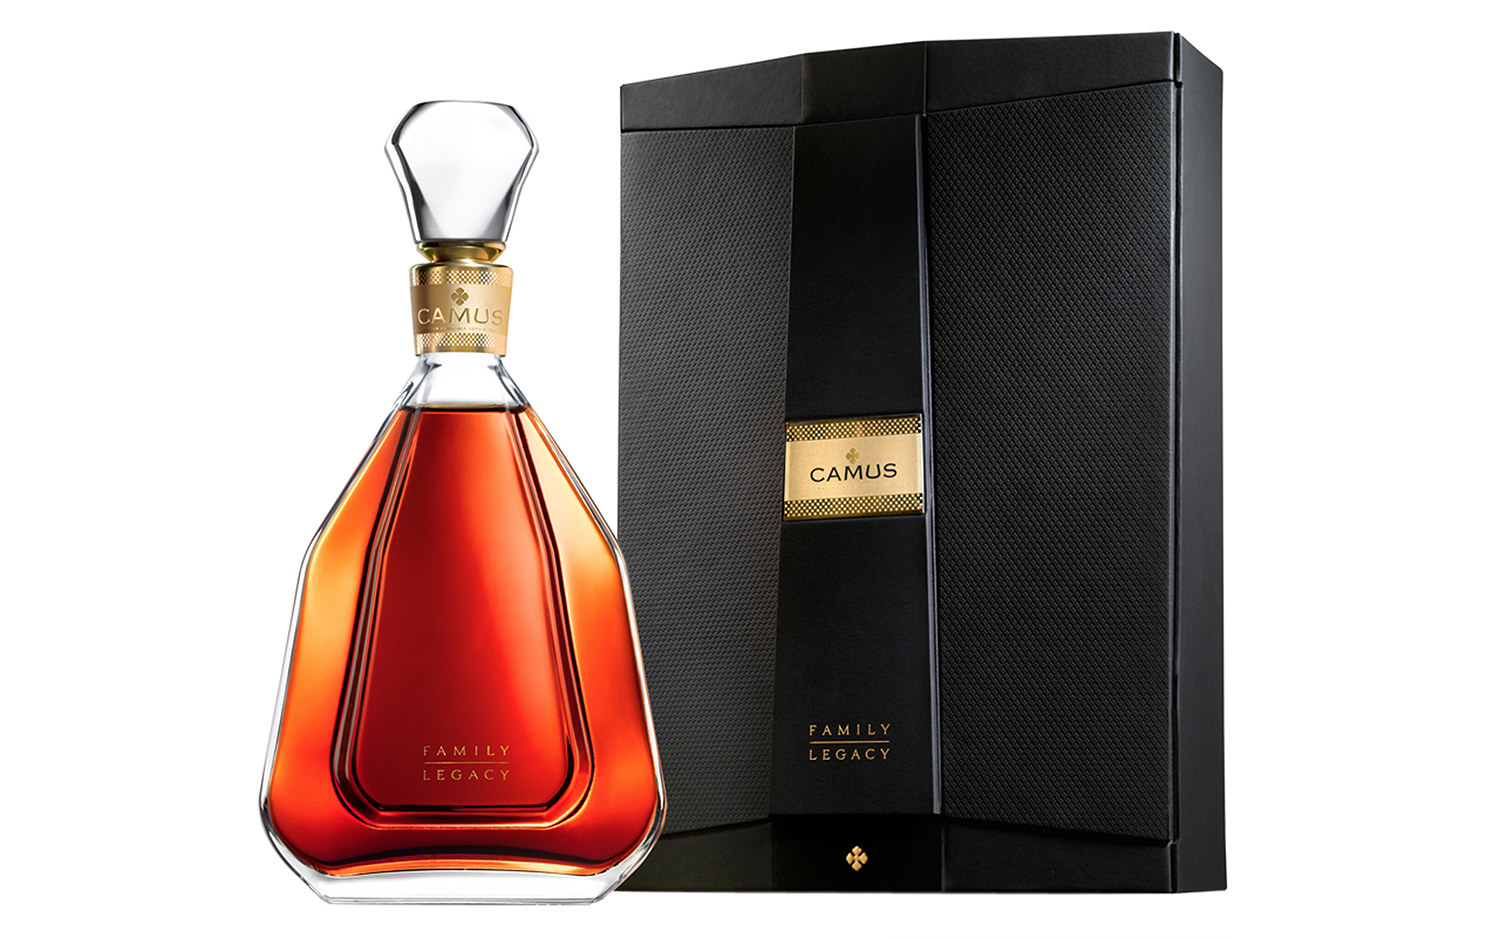 As Cyril CAMUS often says, a great Cognac is born of a father, a grandfather and a great-grandfather who were able to pass on an ancient culture of the art of distillation and aging, whilst each adding their own personal touch.    Family Legacy is the latest addition to the CAMUS family. The most remarkable feature of this Cognac is the way its creators methodically, patiently and subtly adhered to the ancestral rules of perfect blending, a legacy of five generations of accumulated expertise, recorded for posterity in notebooks since the 19th century.    8 consecutive blends are required to produce Family Legacy and thus attain the perfect degree of 40.8% vol.